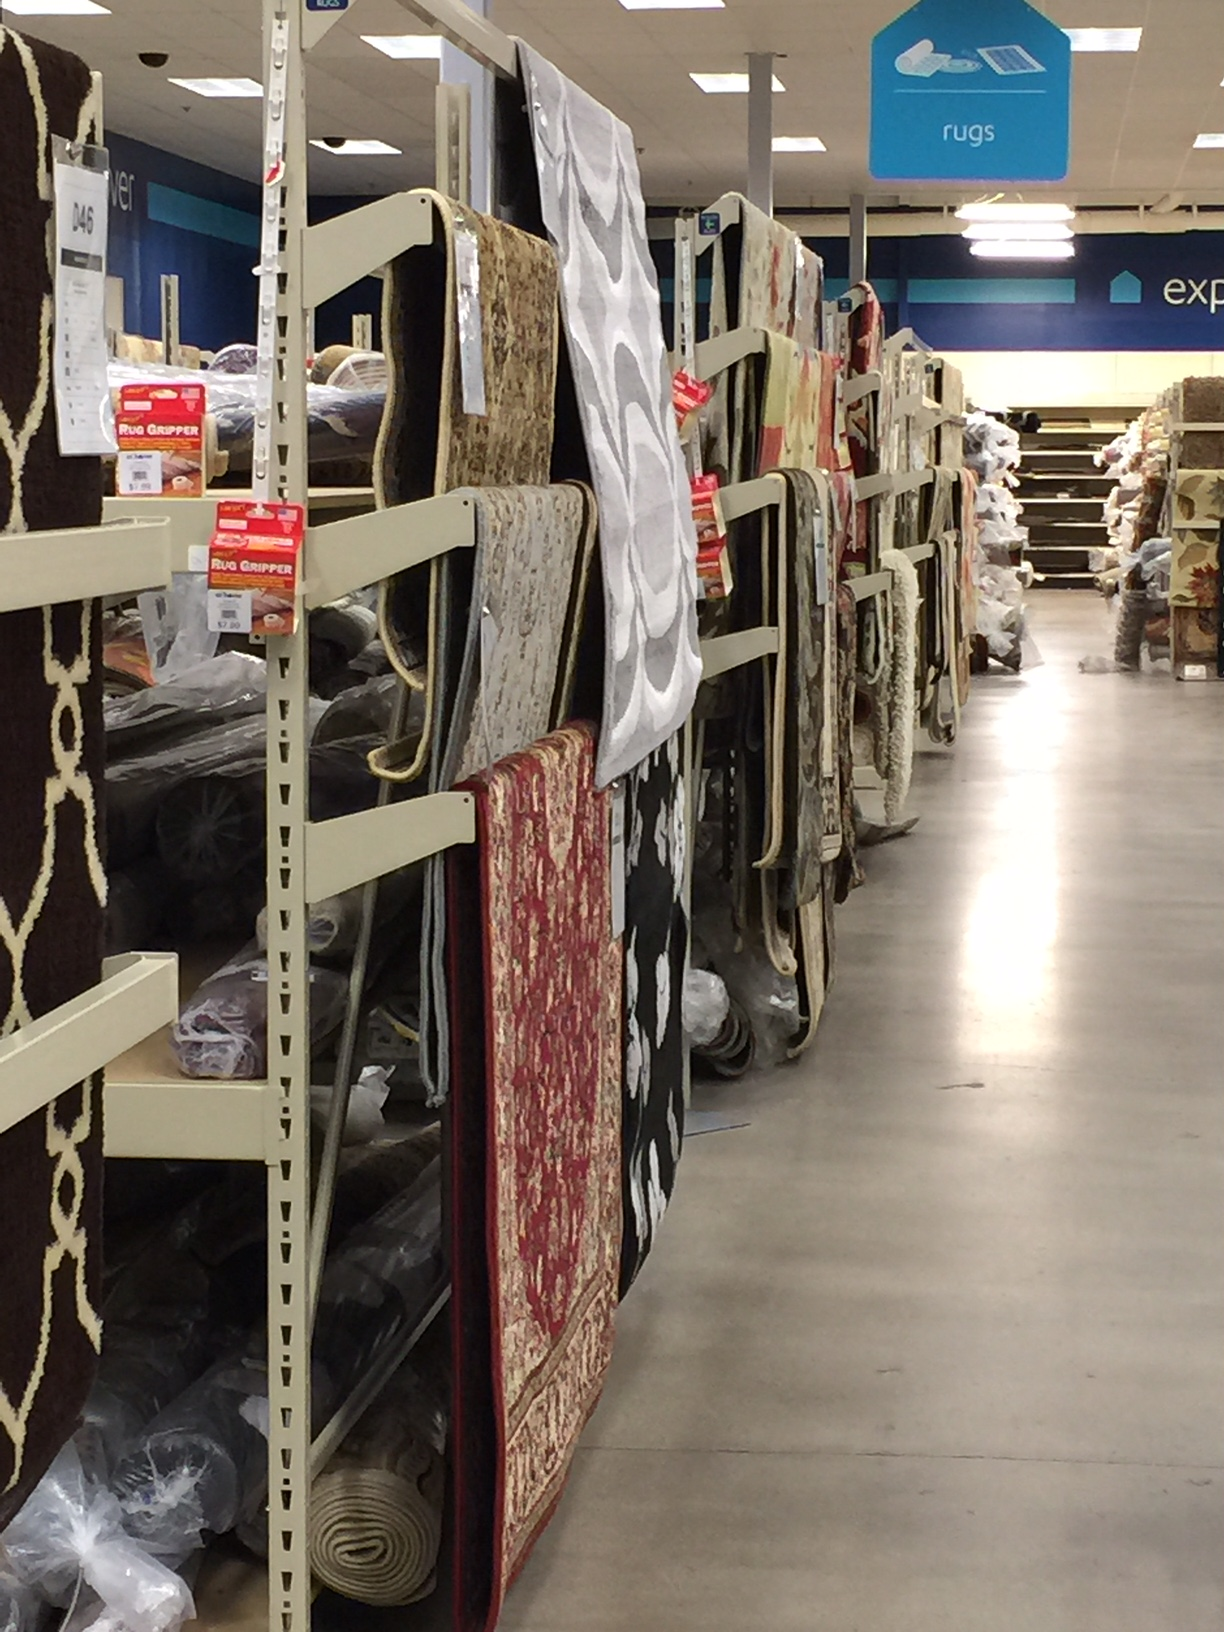 The Store Also Offered The Expected Candles Lamps Picture Frames Wall D Cor  And Other Miscellaneous